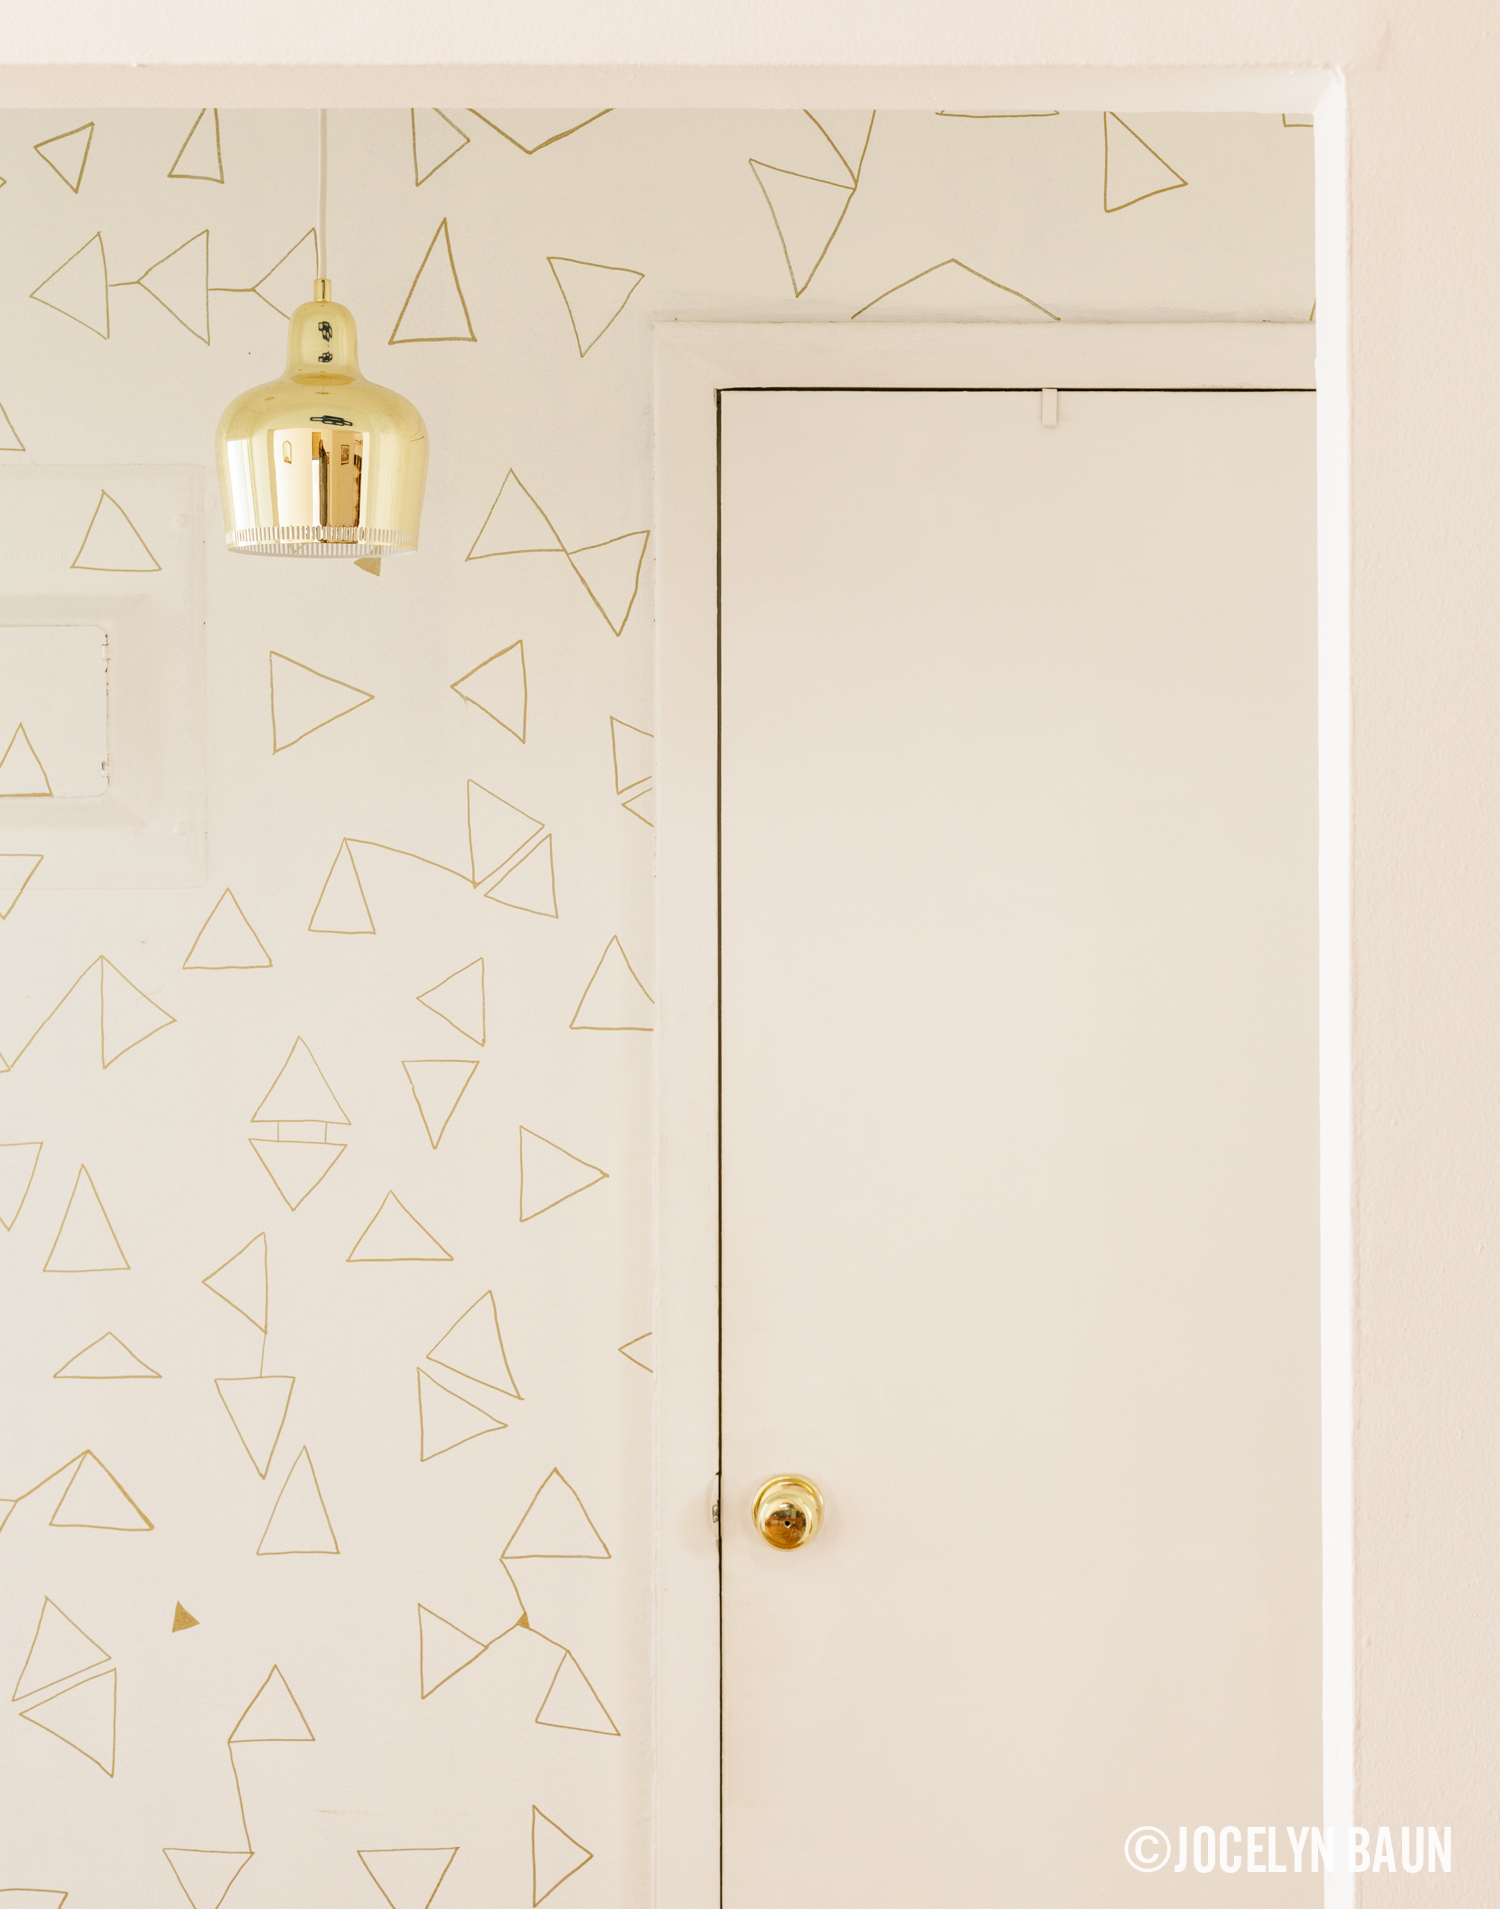 bkstyled Rima Campbell hand-drawn wall design